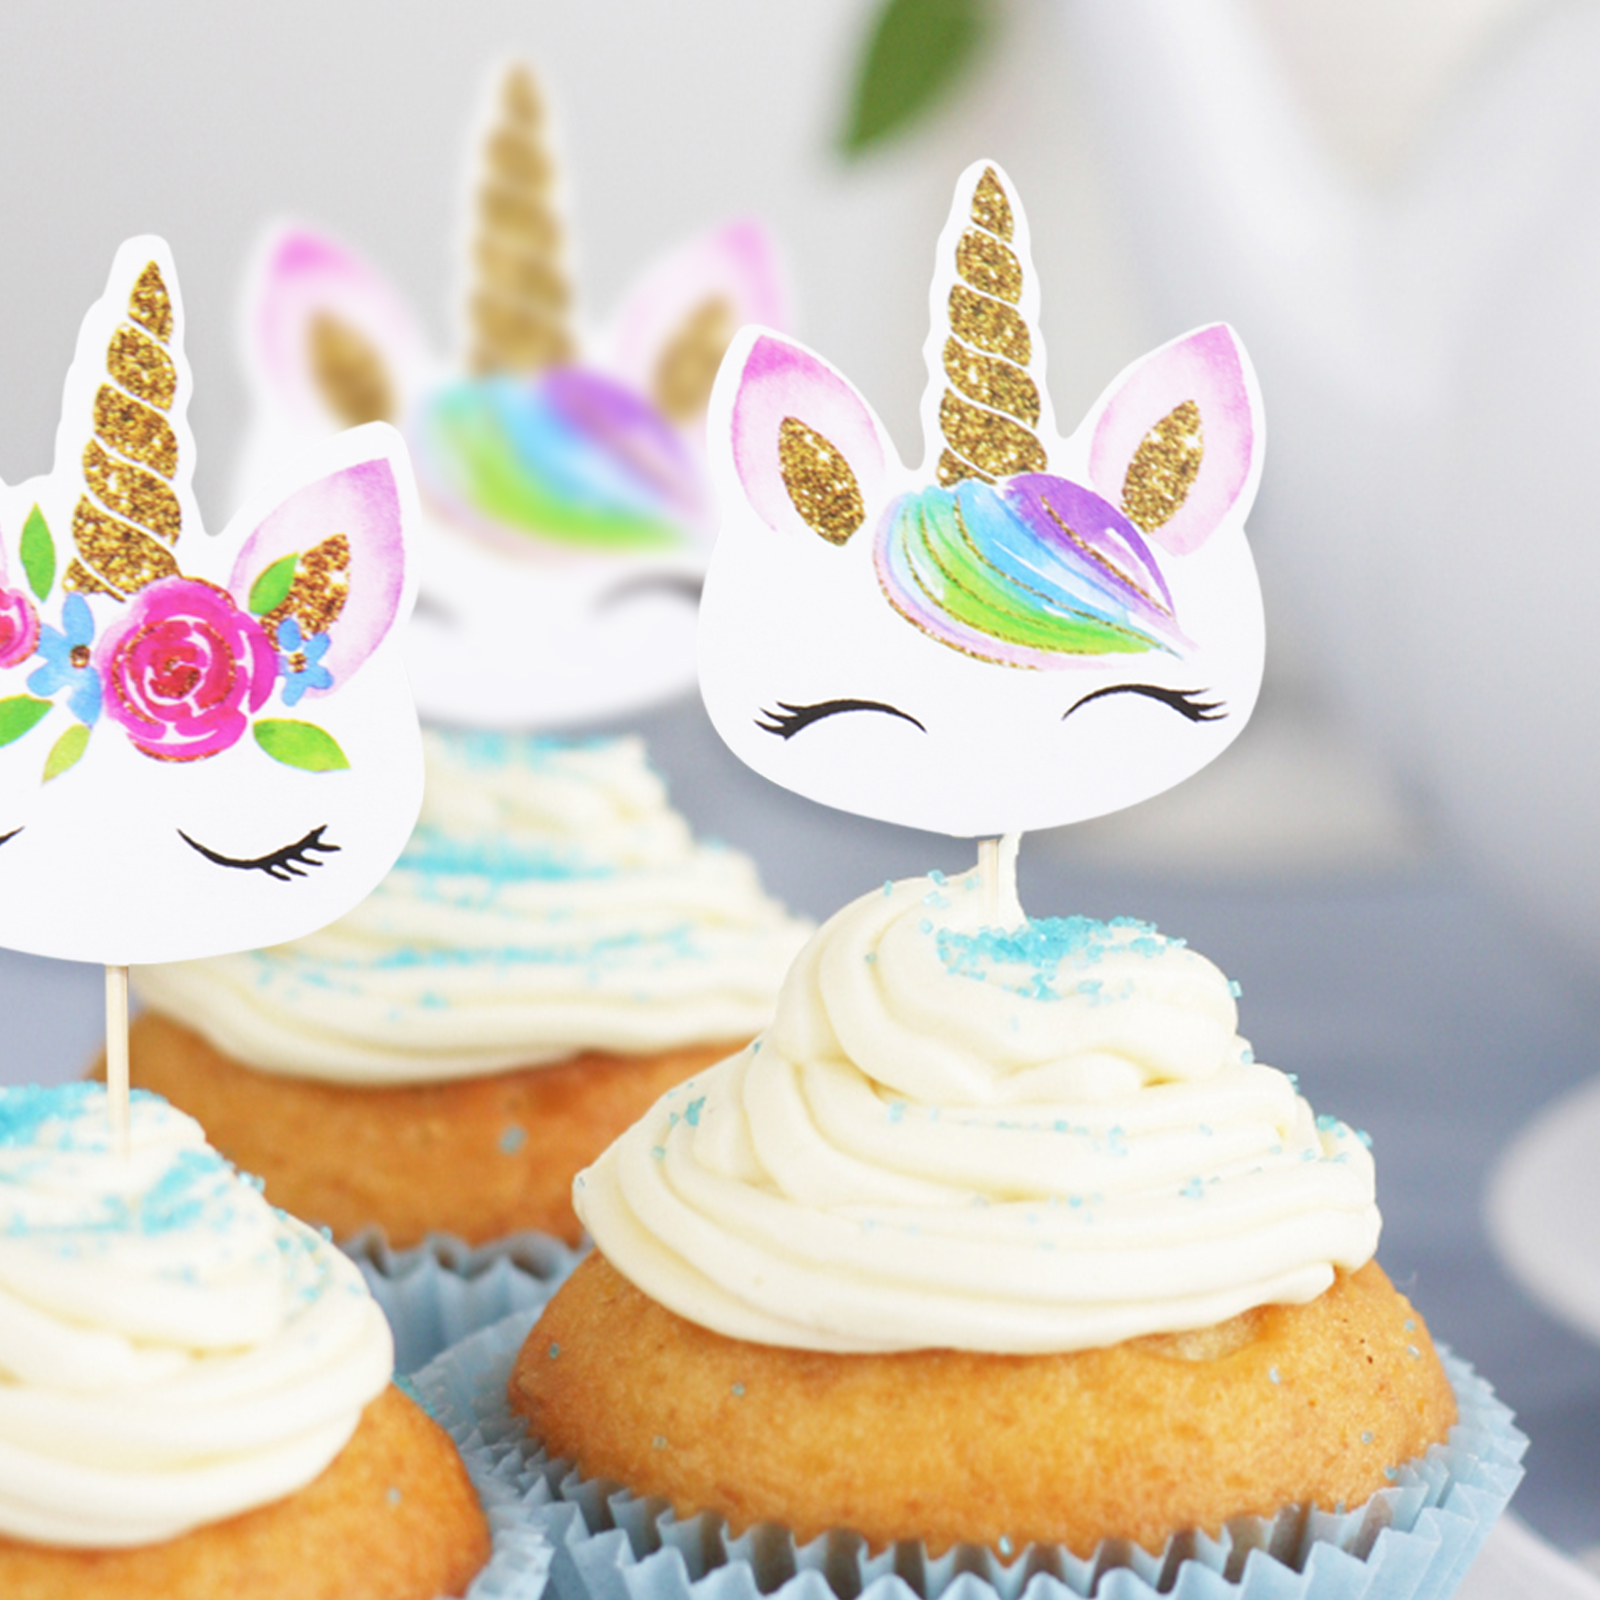 24 pcs/lot Smiley Unicorn Cupcake Wrappers Toppers Kids Party Birthday Decoration Cake Decor Supplies(12 topper+12 toothpicks)